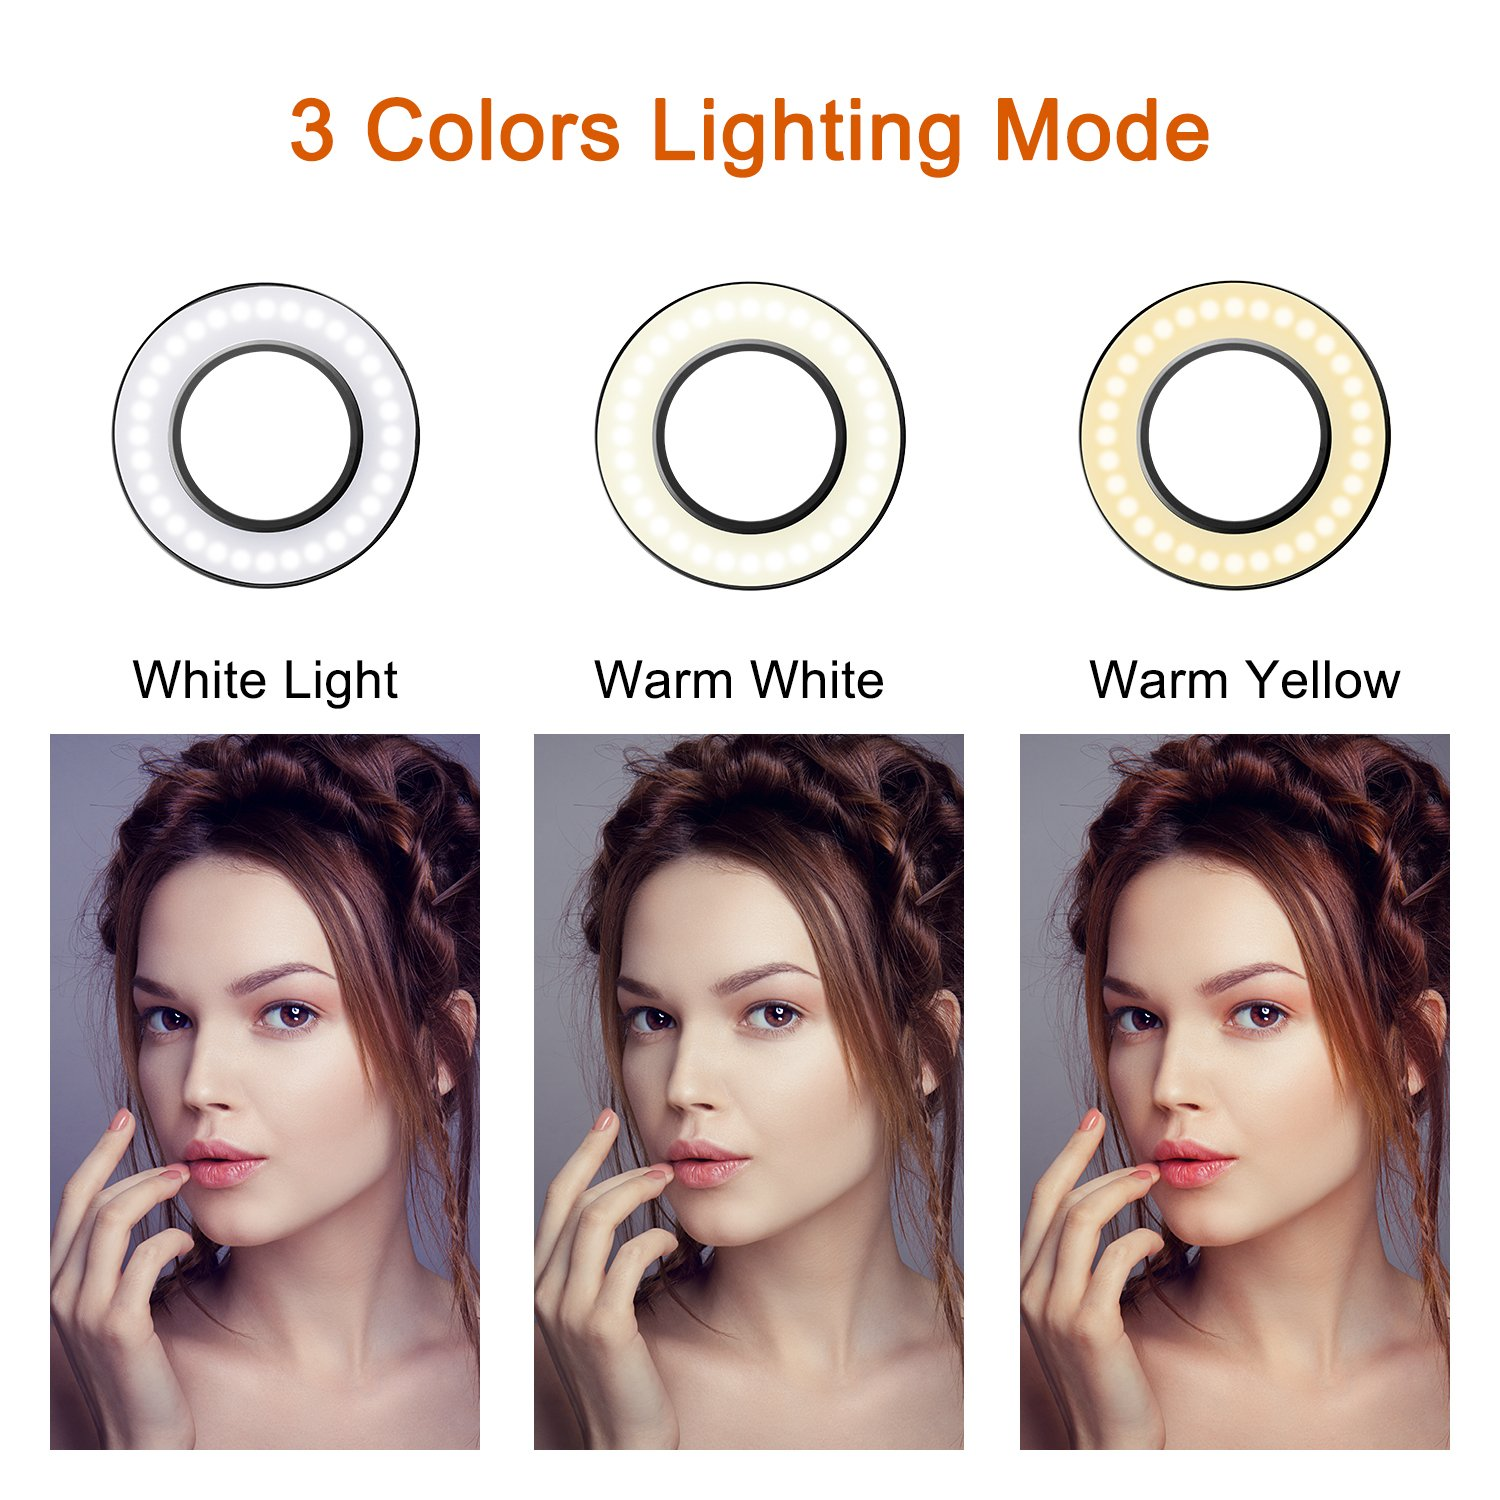 Selfie Ring Light with Cell Phone Holder Stand for Live Stream/Makeup, UBeesize Mini LED Camera Lighting with Flexible Arms Compatible with iPhone/Android by UBeesize (Image #2)